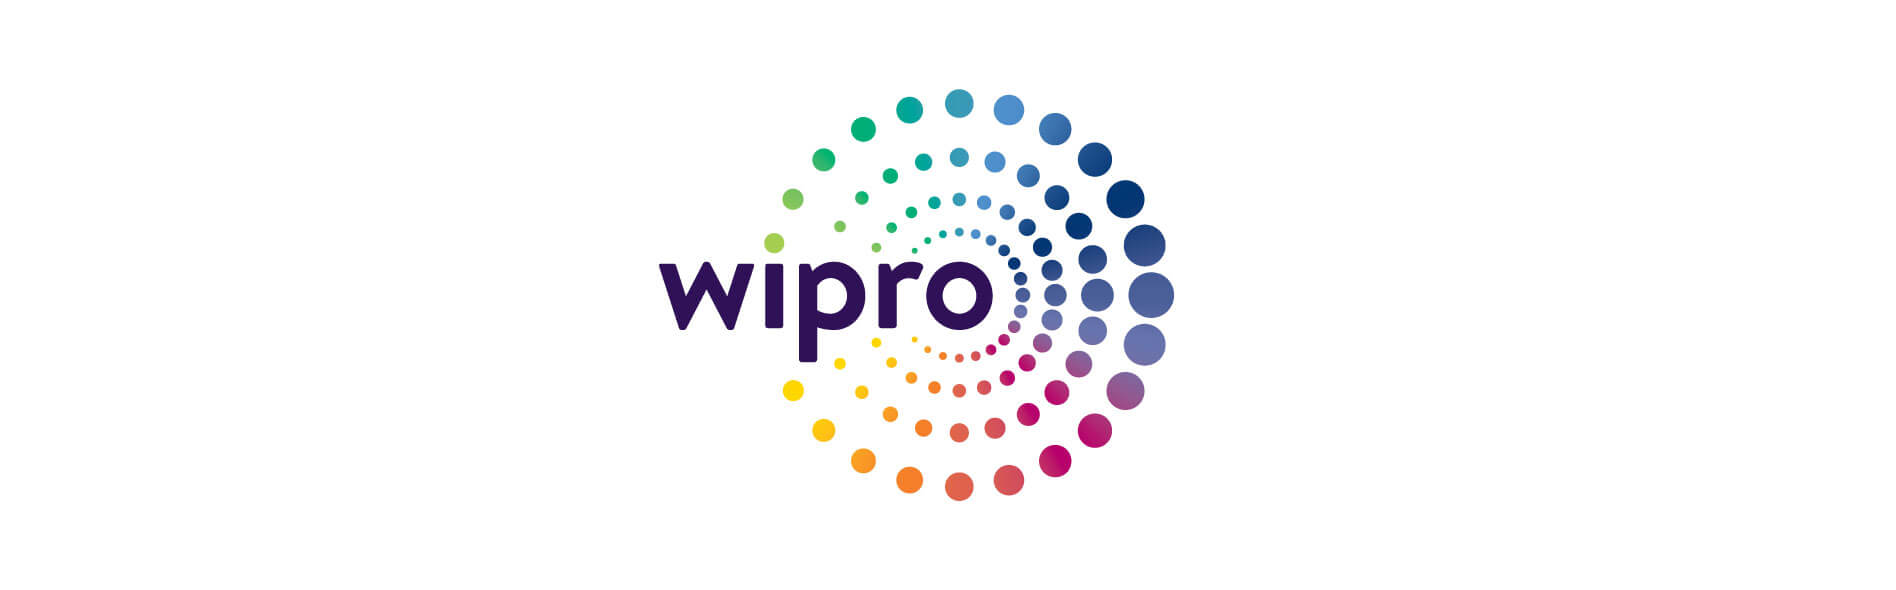 Wipro announces strong Q3 numbers. Profit is up by 20.8% and revenue by 1.3%